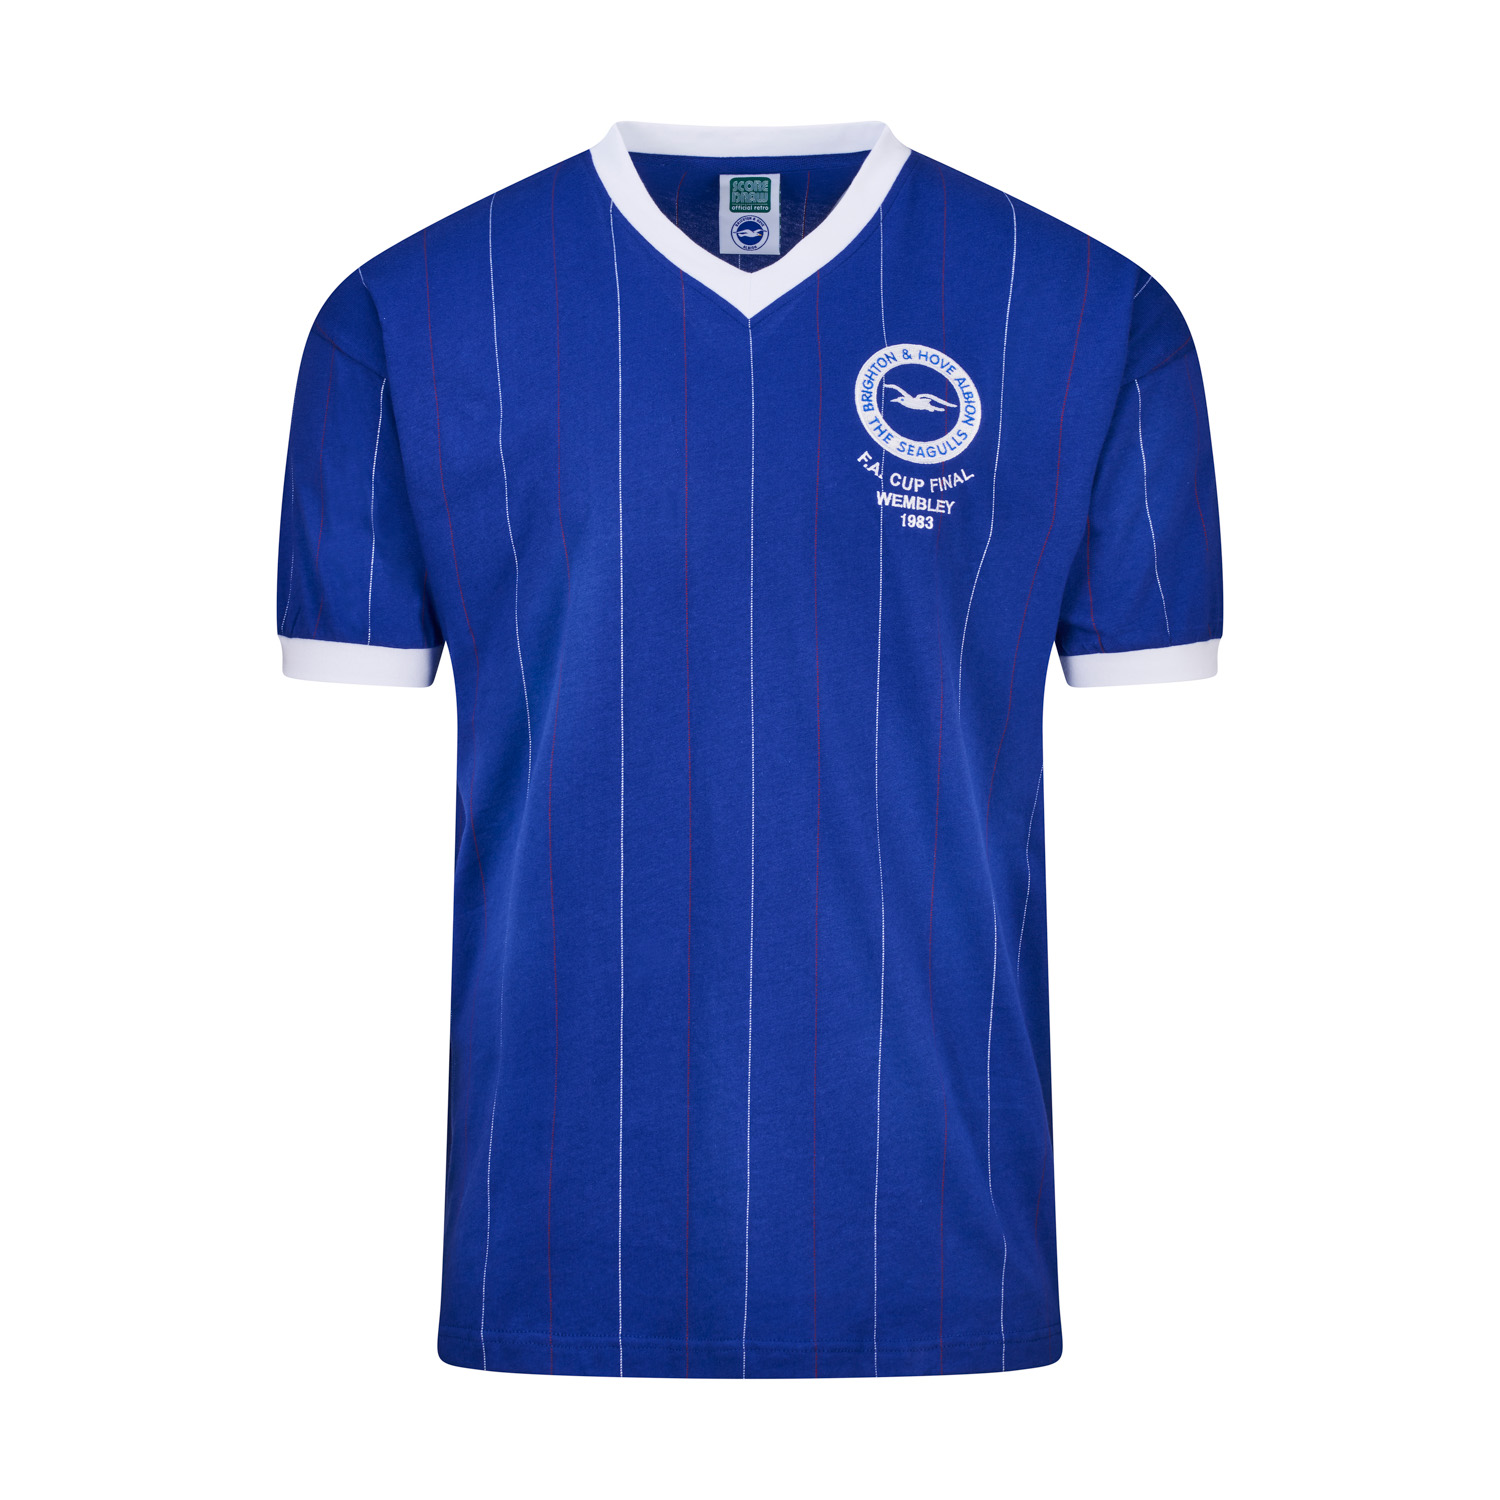 Brighton and Hove Albion FA Cup Final 1983 Kit